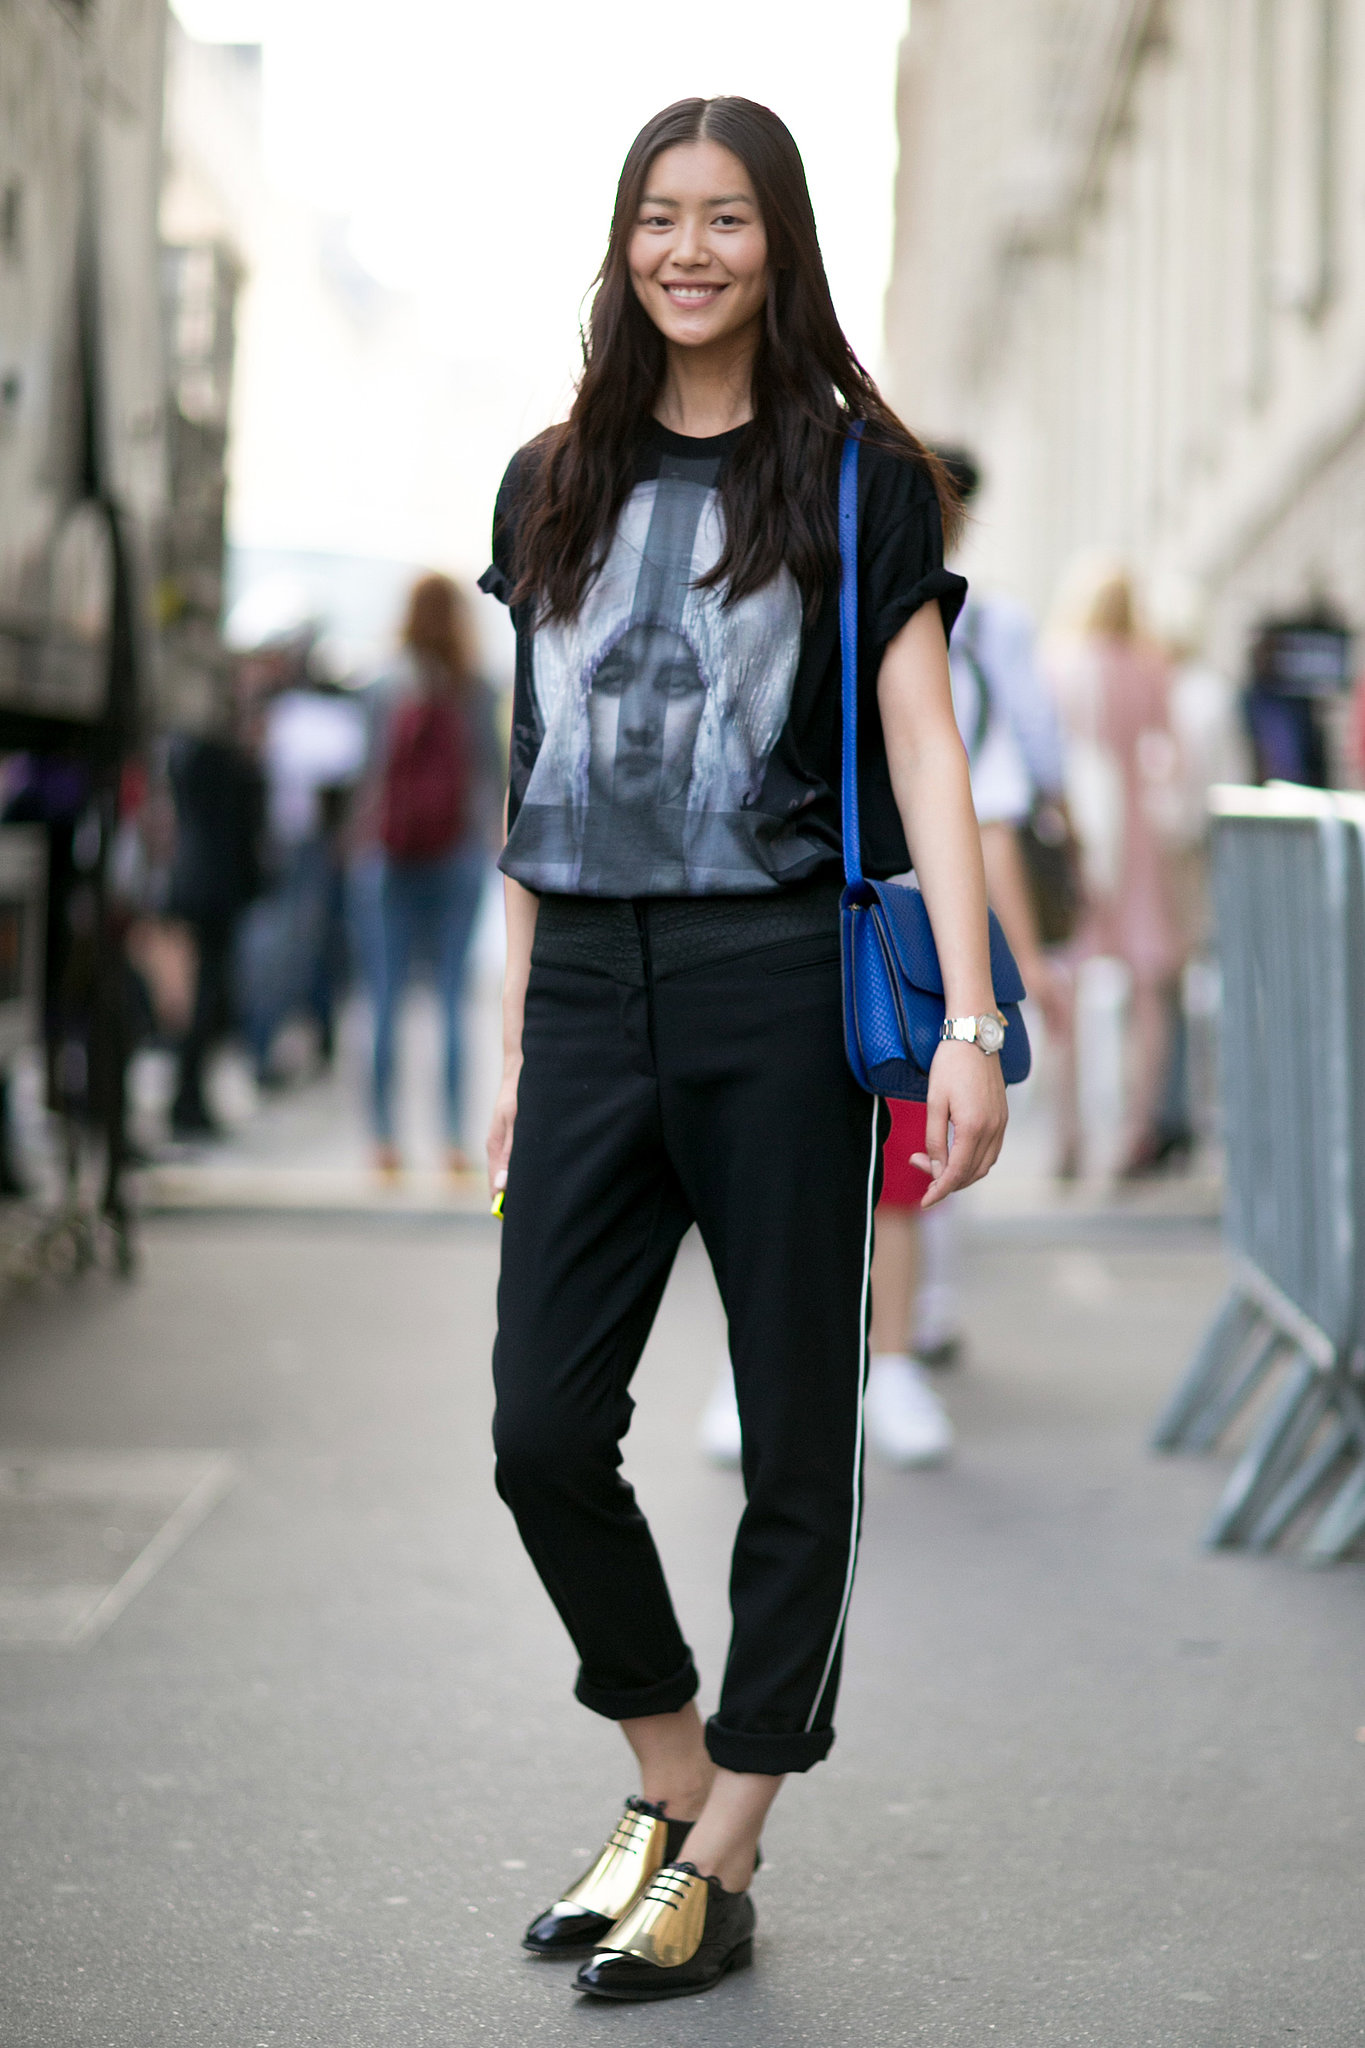 Liu-Wen-styles-up-her-look-snazzy-kicks